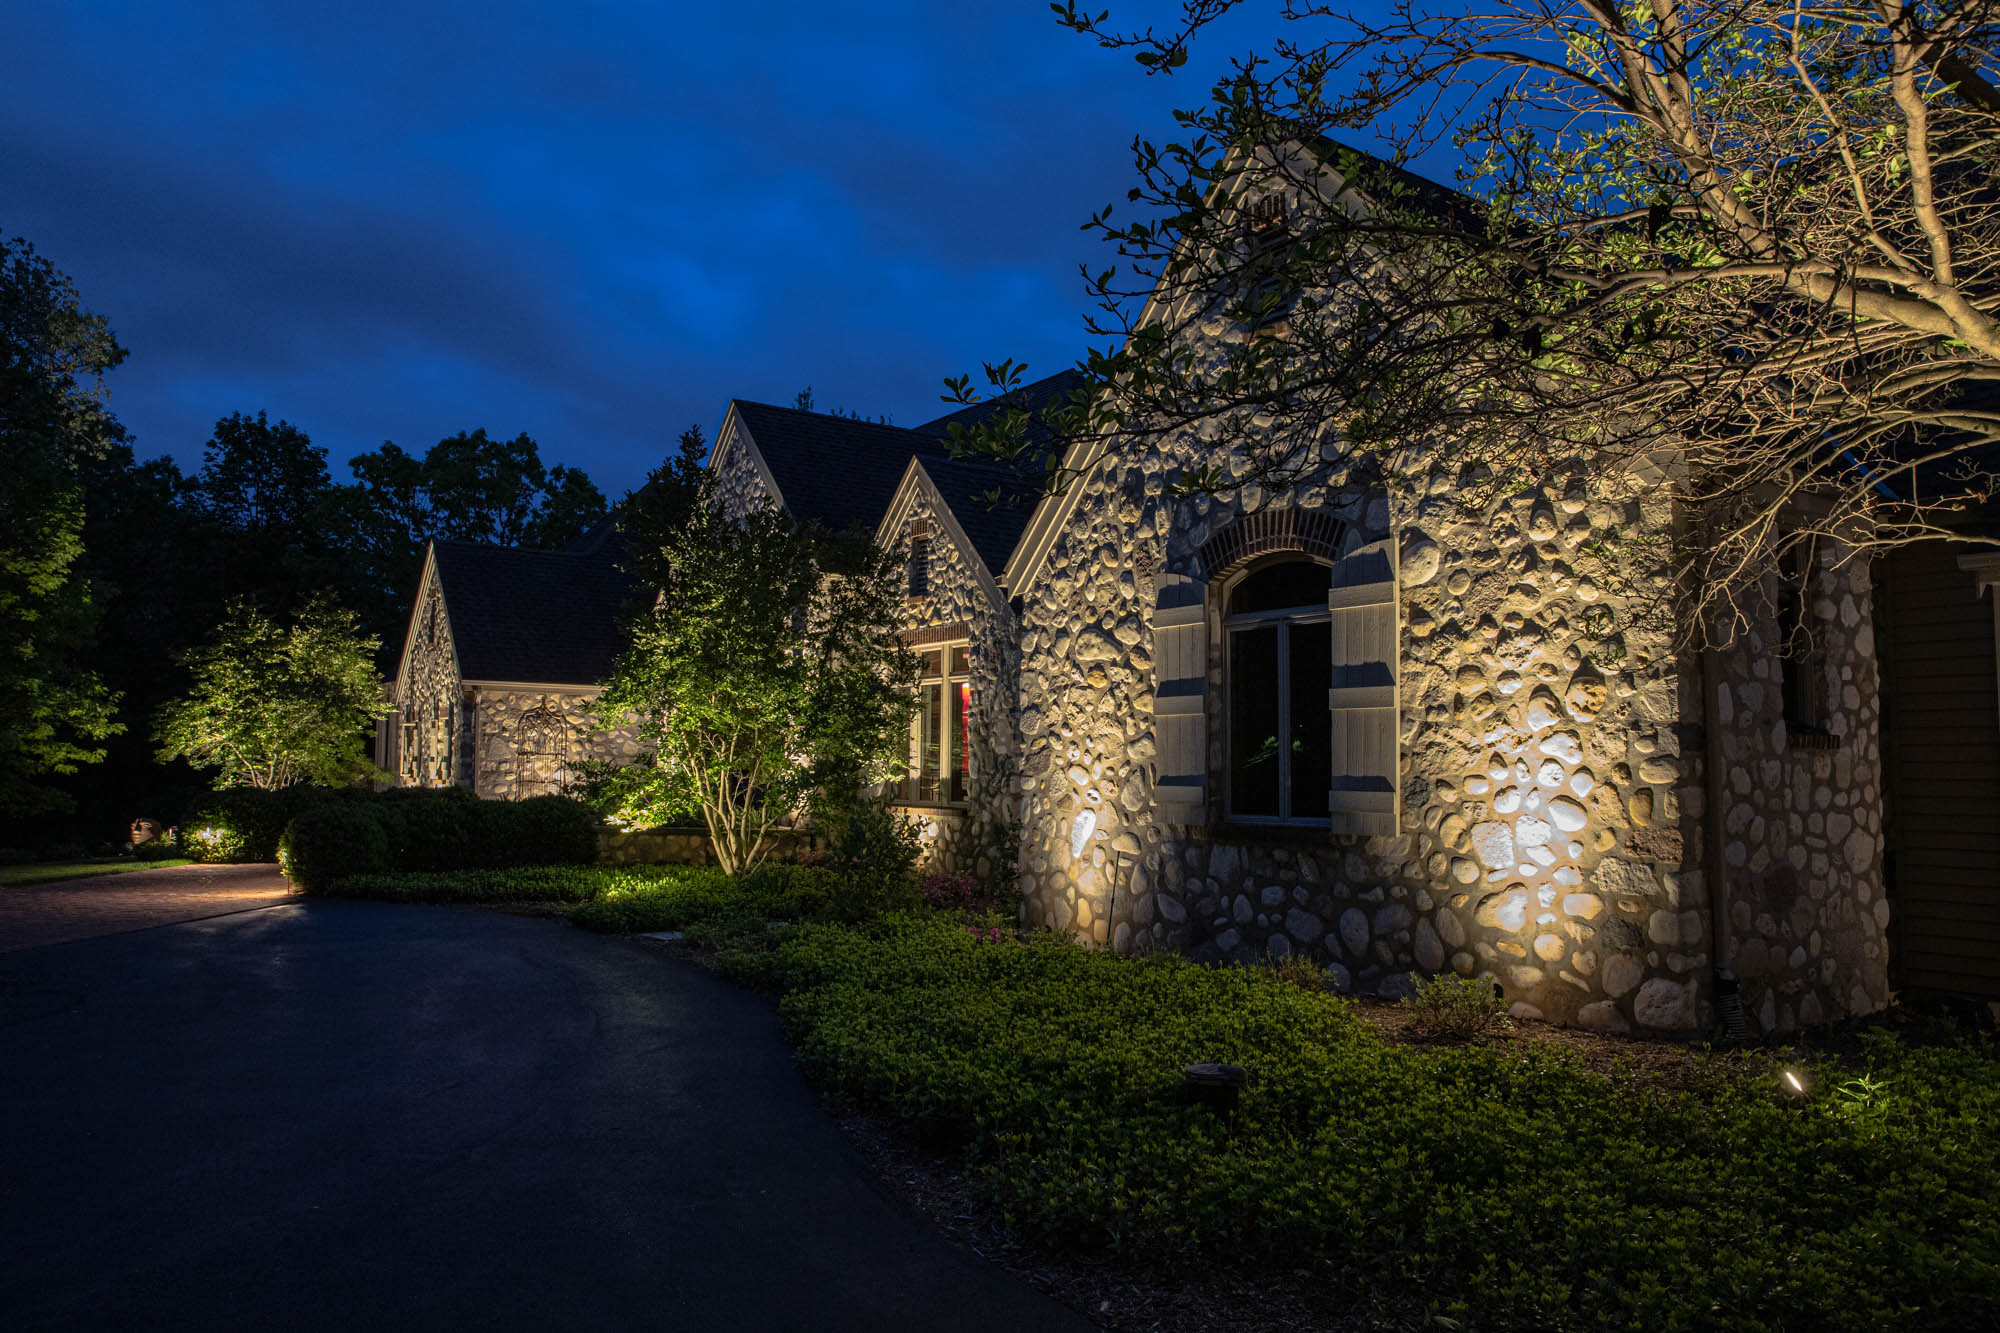 delafield landscape outdoor lighting night owl home residential landscape light design